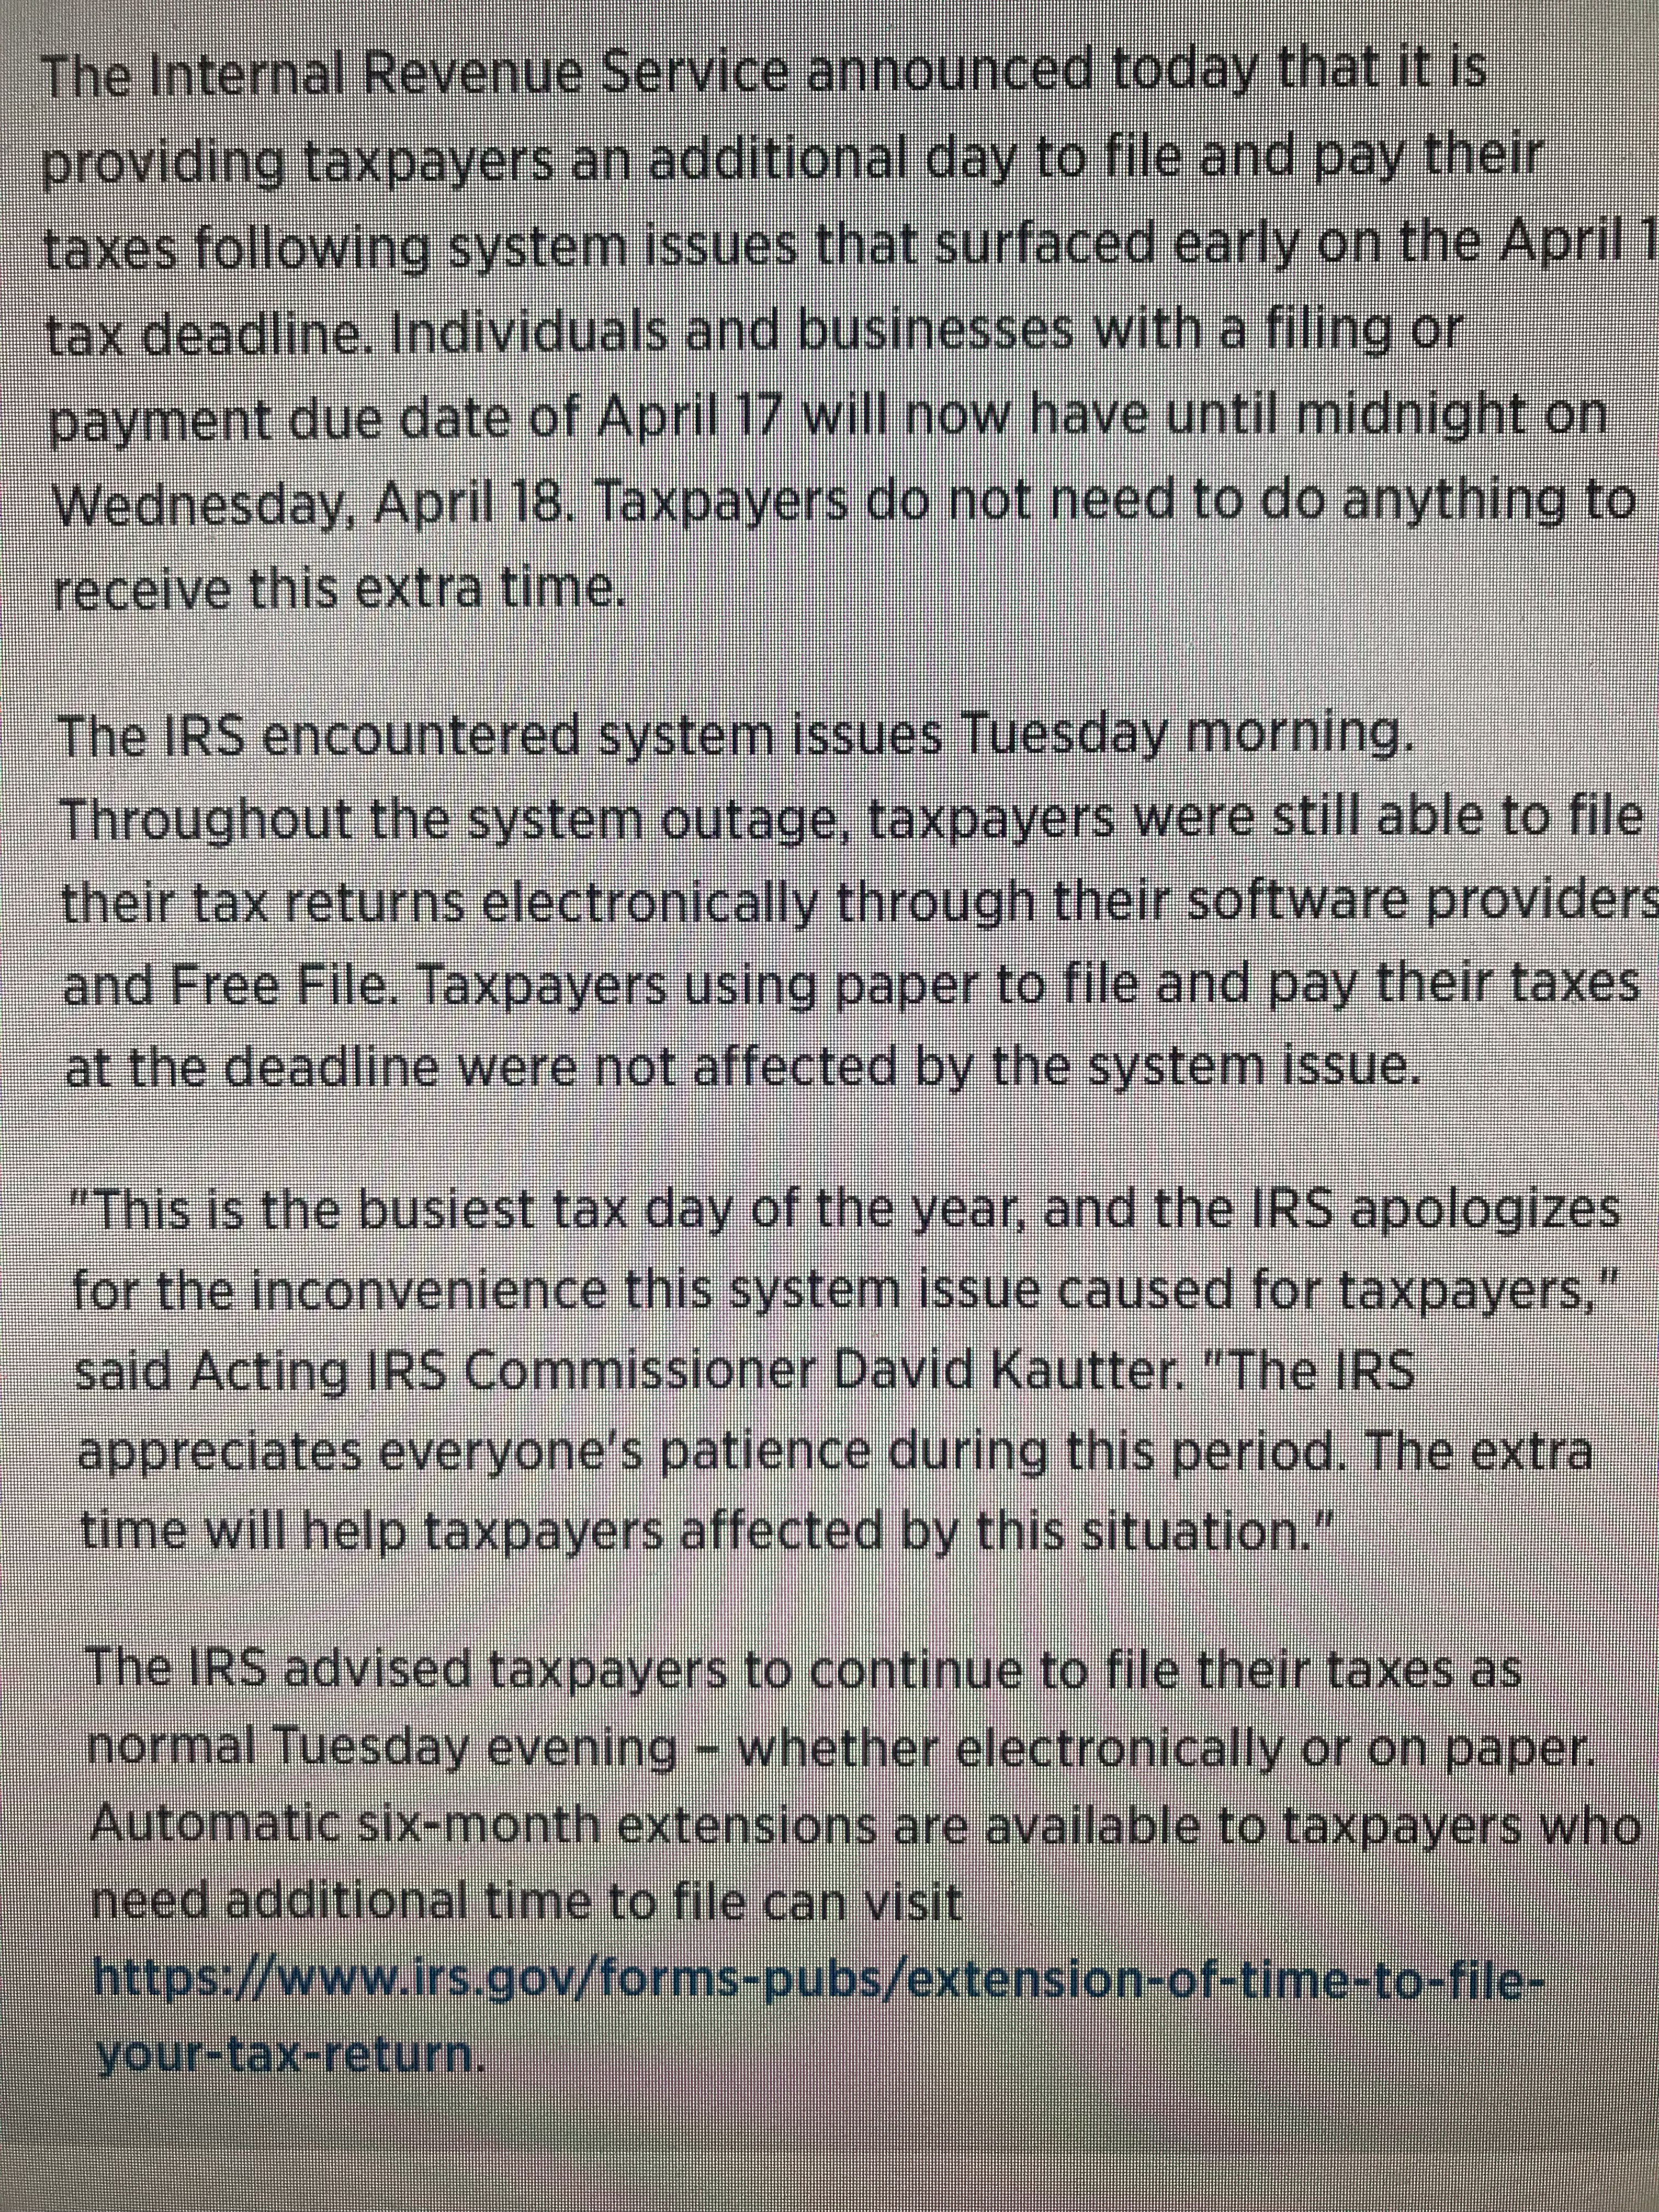 Irs Gives Taxpayers One Day Extension To File Windermere Sun